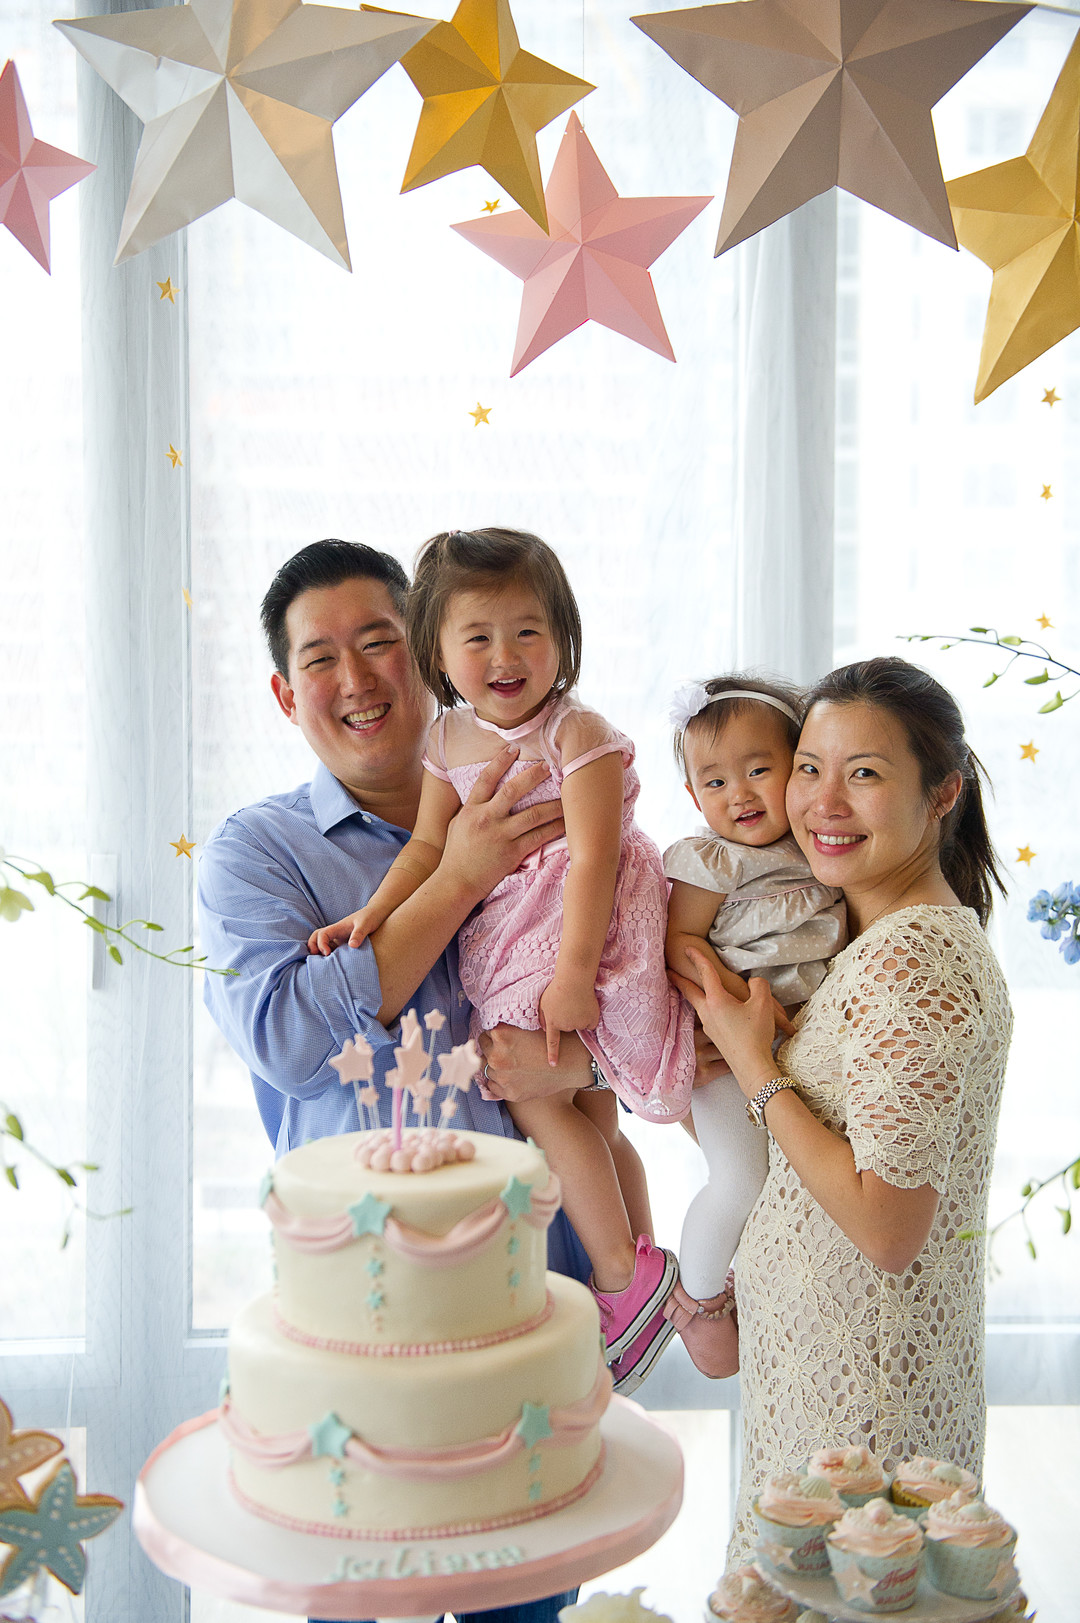 family celebrating daughter's first birthday party